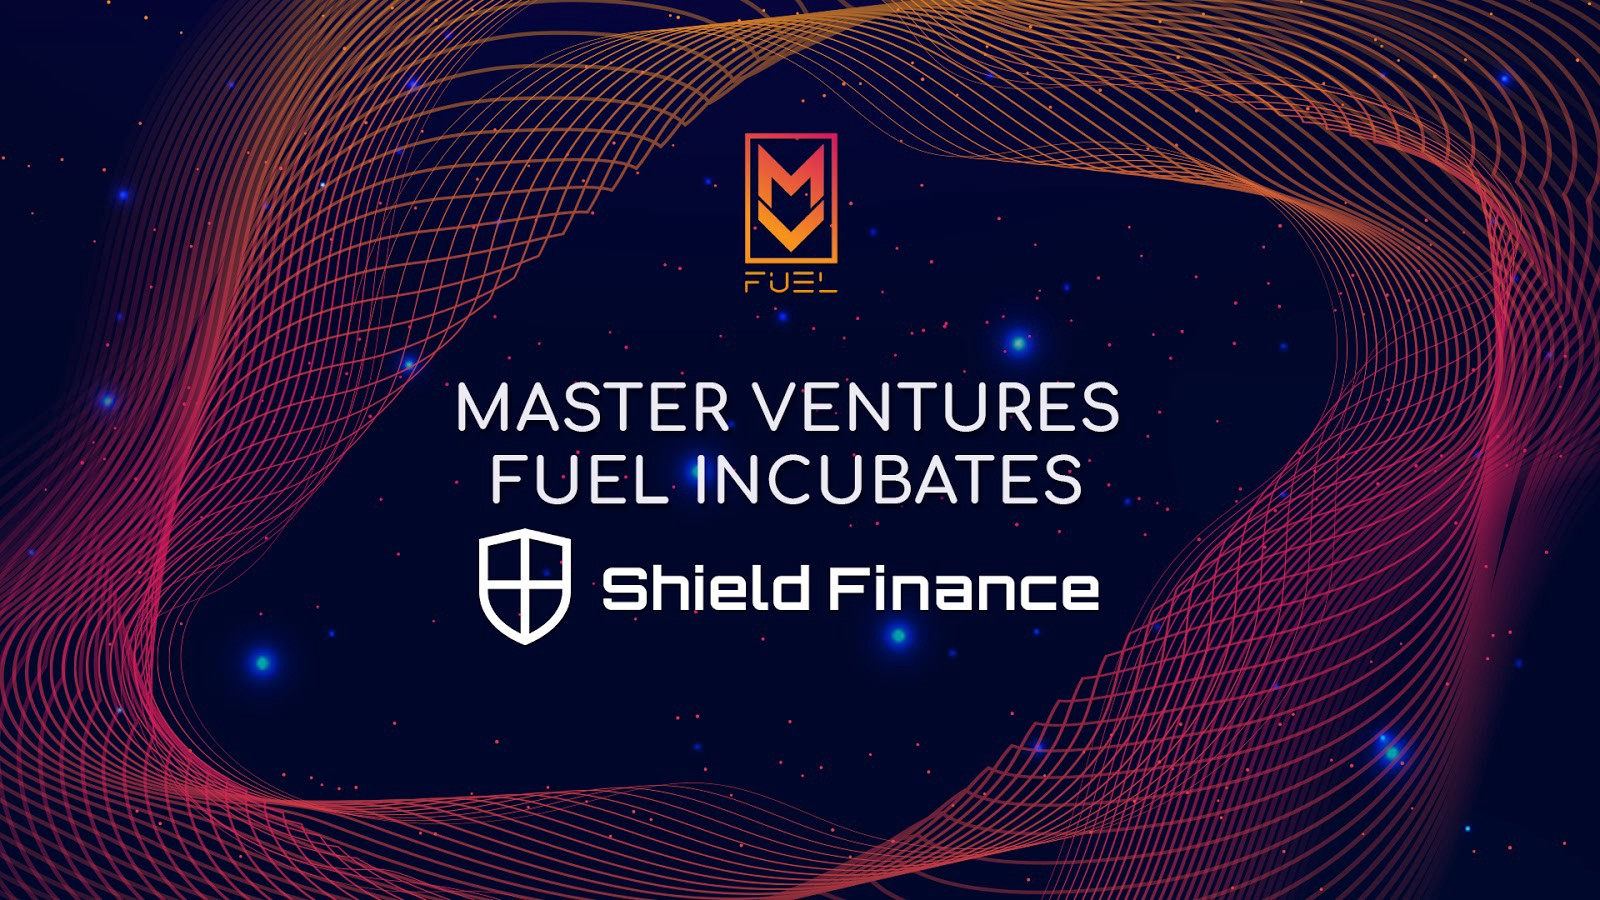 <Master Ventures Incubation ARM MV FUEL announces incubation of Shield Finance>